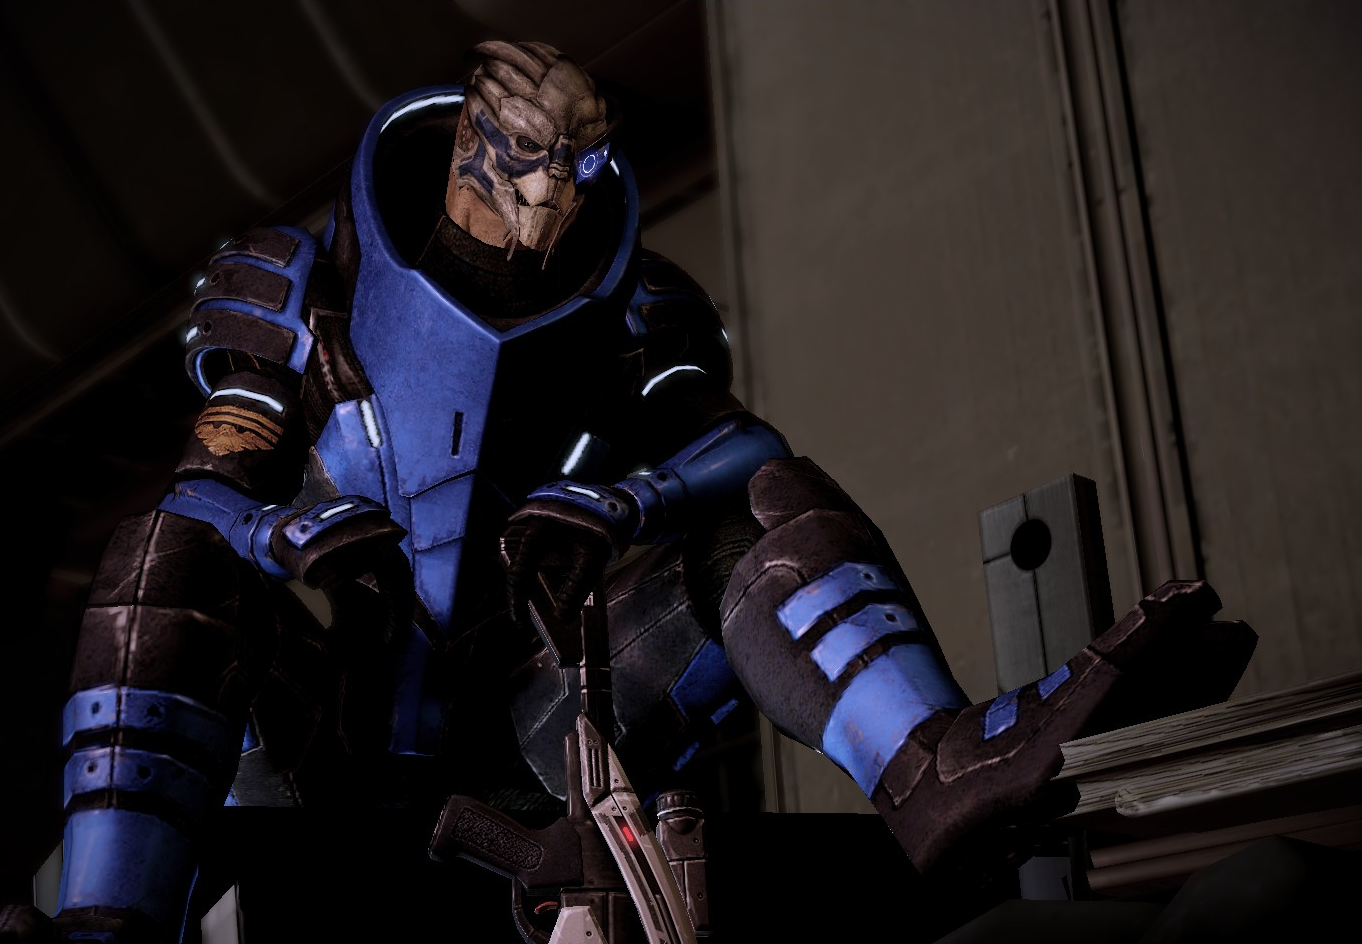 Garrus Vakarian: The Perfect Template